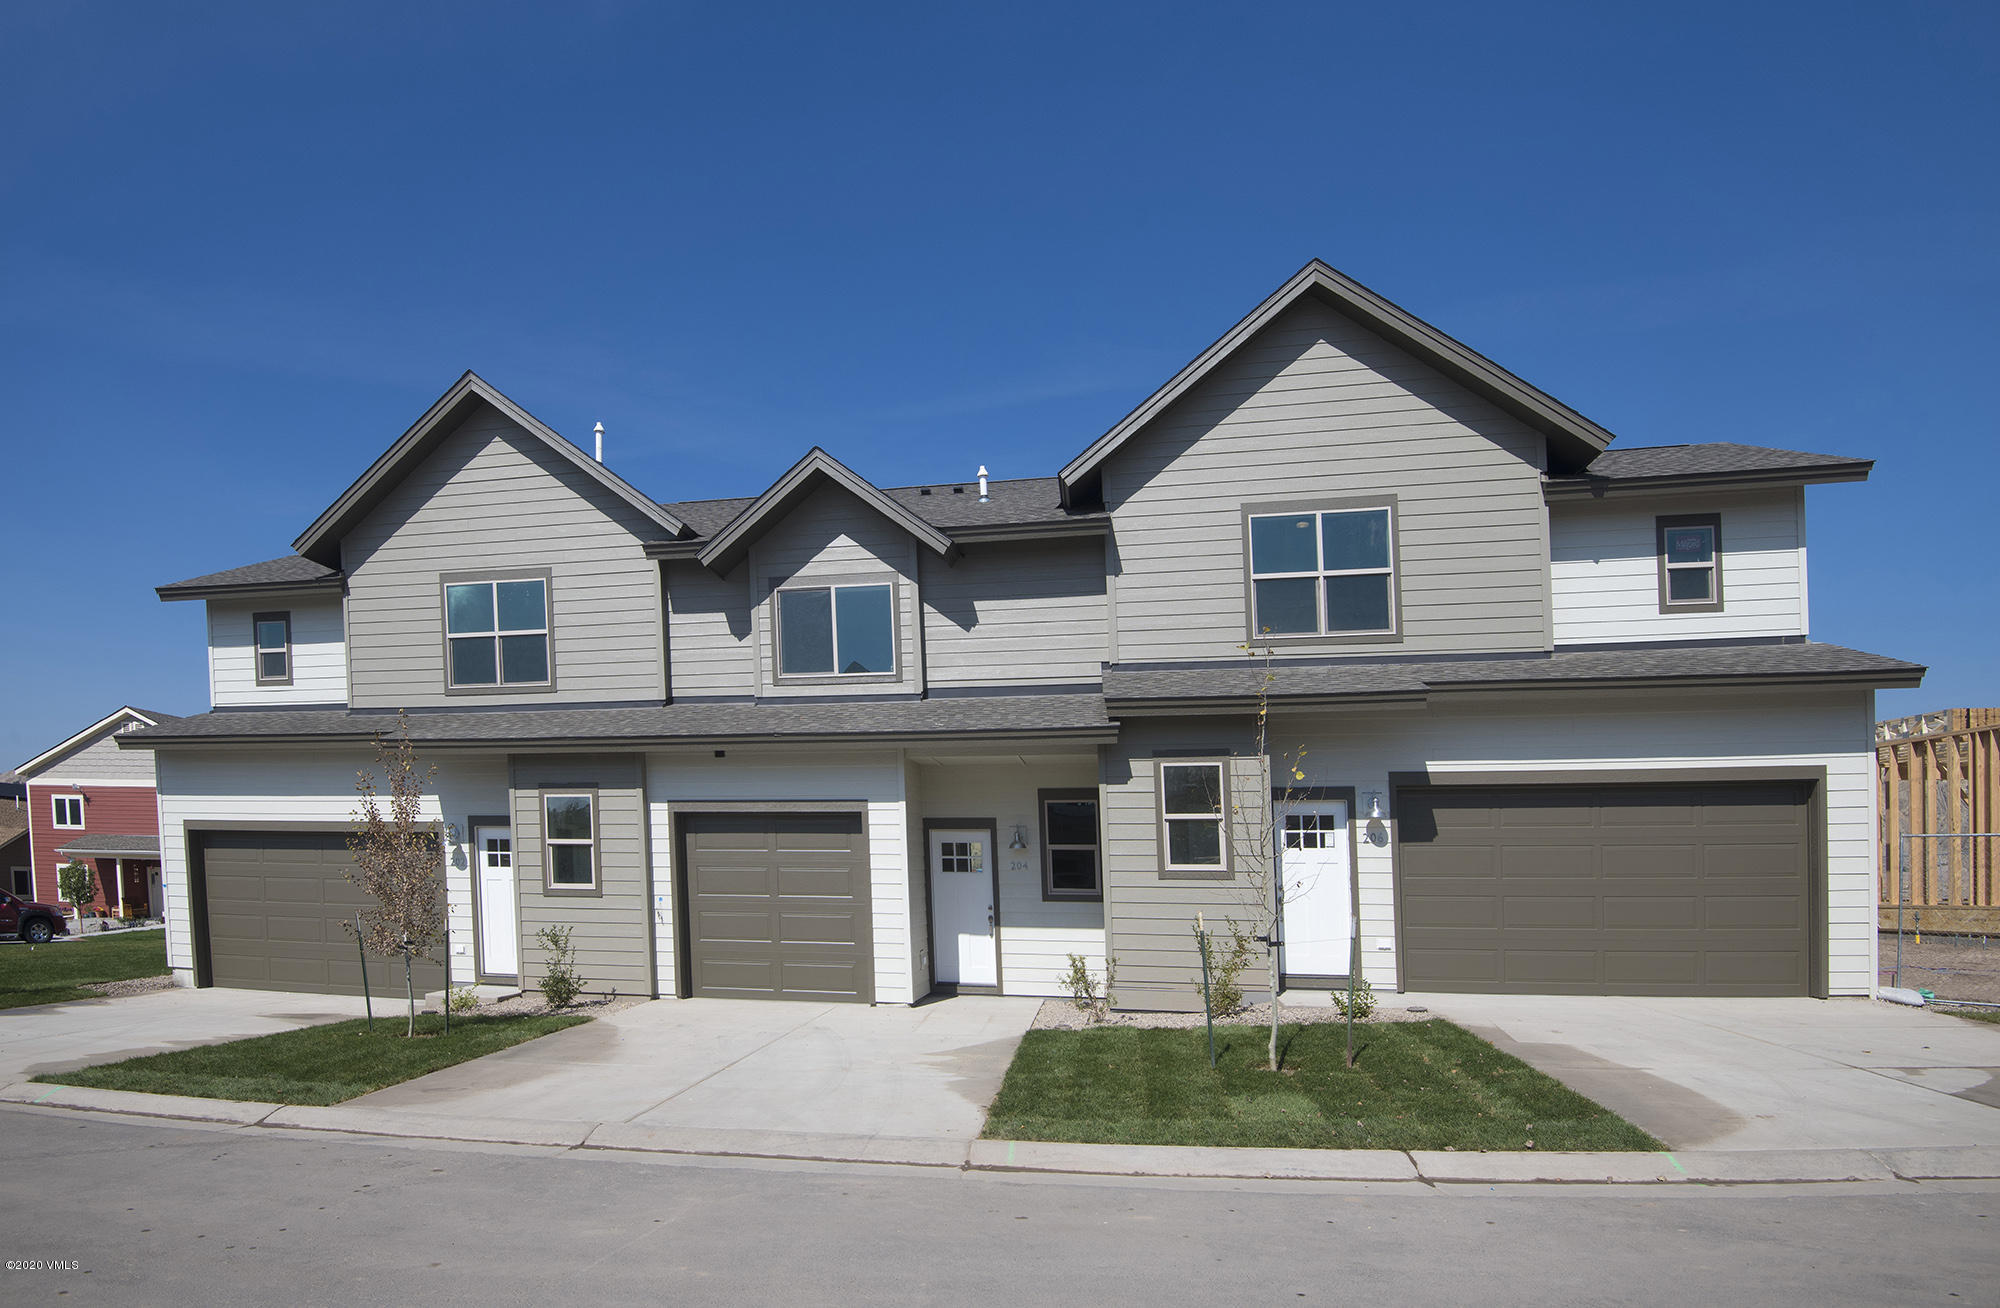 BRAND NEW TOWNHOME! Well-designed, site-built, 3 bedroom, 2.5 bath home with an attached 1-car garage. Incredibly convenient location close to Costco, Gypsum Rec Ctr, and Eagle County Airport. Only minutes to world-class recreation of all types. Standard finishes include vaulted ceilings, LVT flooring, laminate countertops, kitchen pantry, & Whirlpool appliances. Upgrades are available as well! Laundry room conveniently located on the bedroom level. This is an end unit and offers plenty of light. WELCOME! https://my.matterport.com/show/?m=fB91R2FgCiF&brand=0